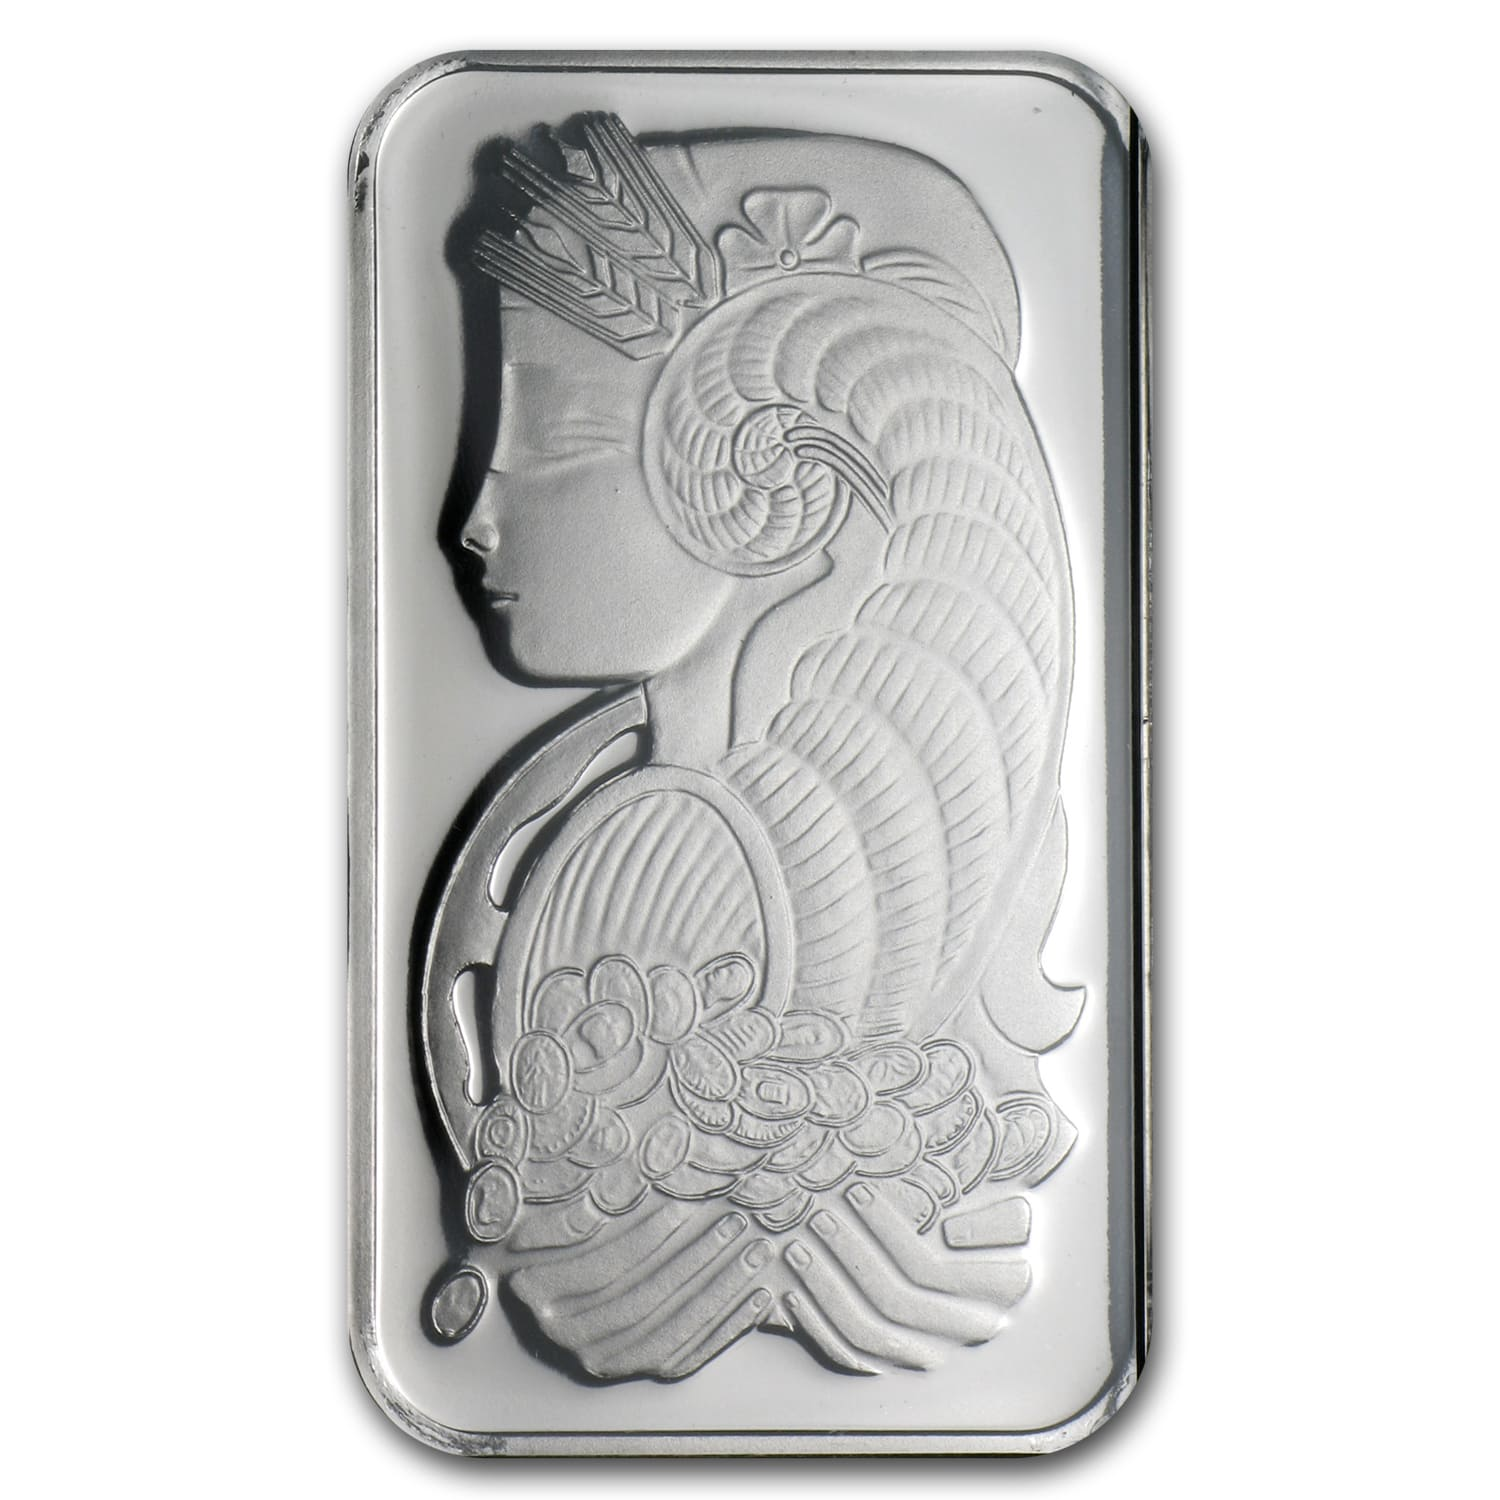 1 oz Platinum Bar - Pamp Suisse (Pre-Sale 3/6/15)